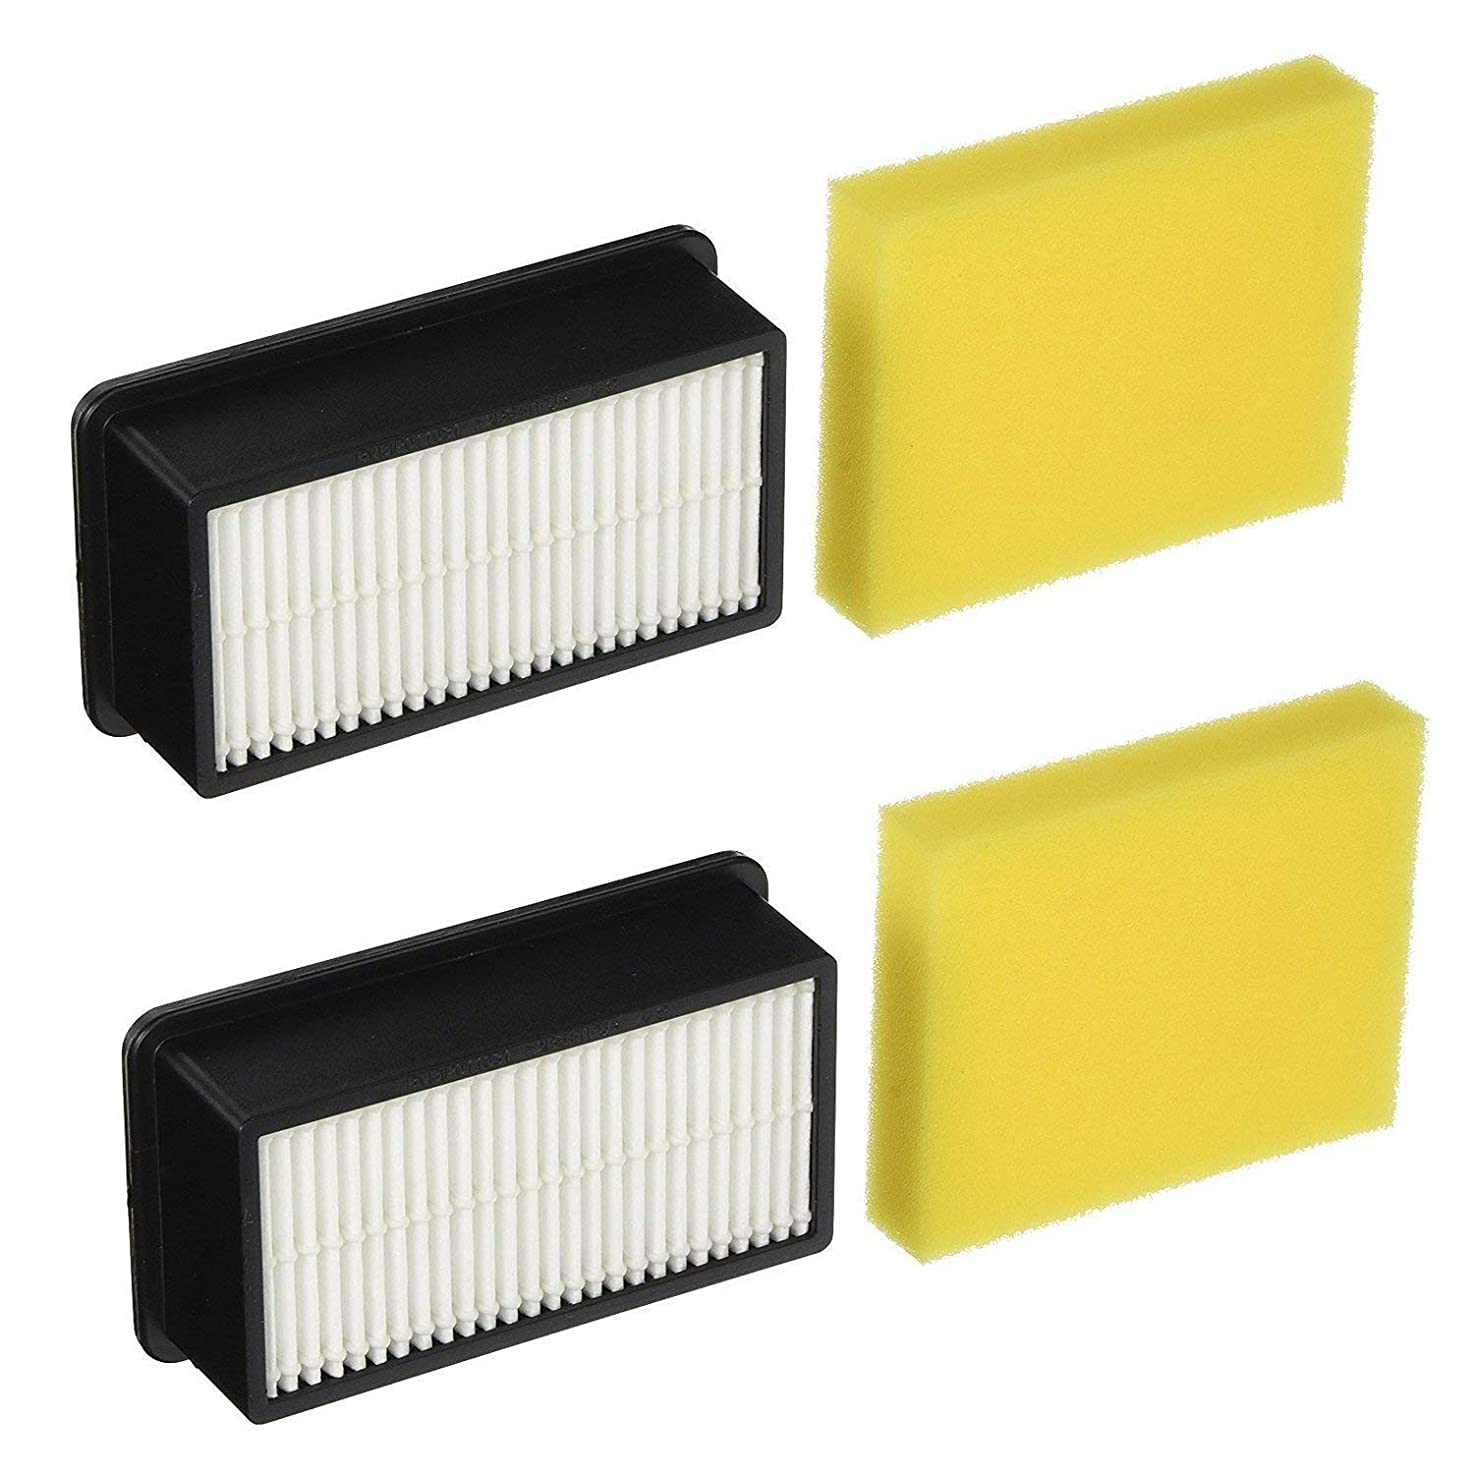 2 Pre-Motor Foam Filter and 2 Post-Motor Filter Replacement Filter Kit for Bissell 1008 CleanView Vacuums pwbtefdviqfaw4